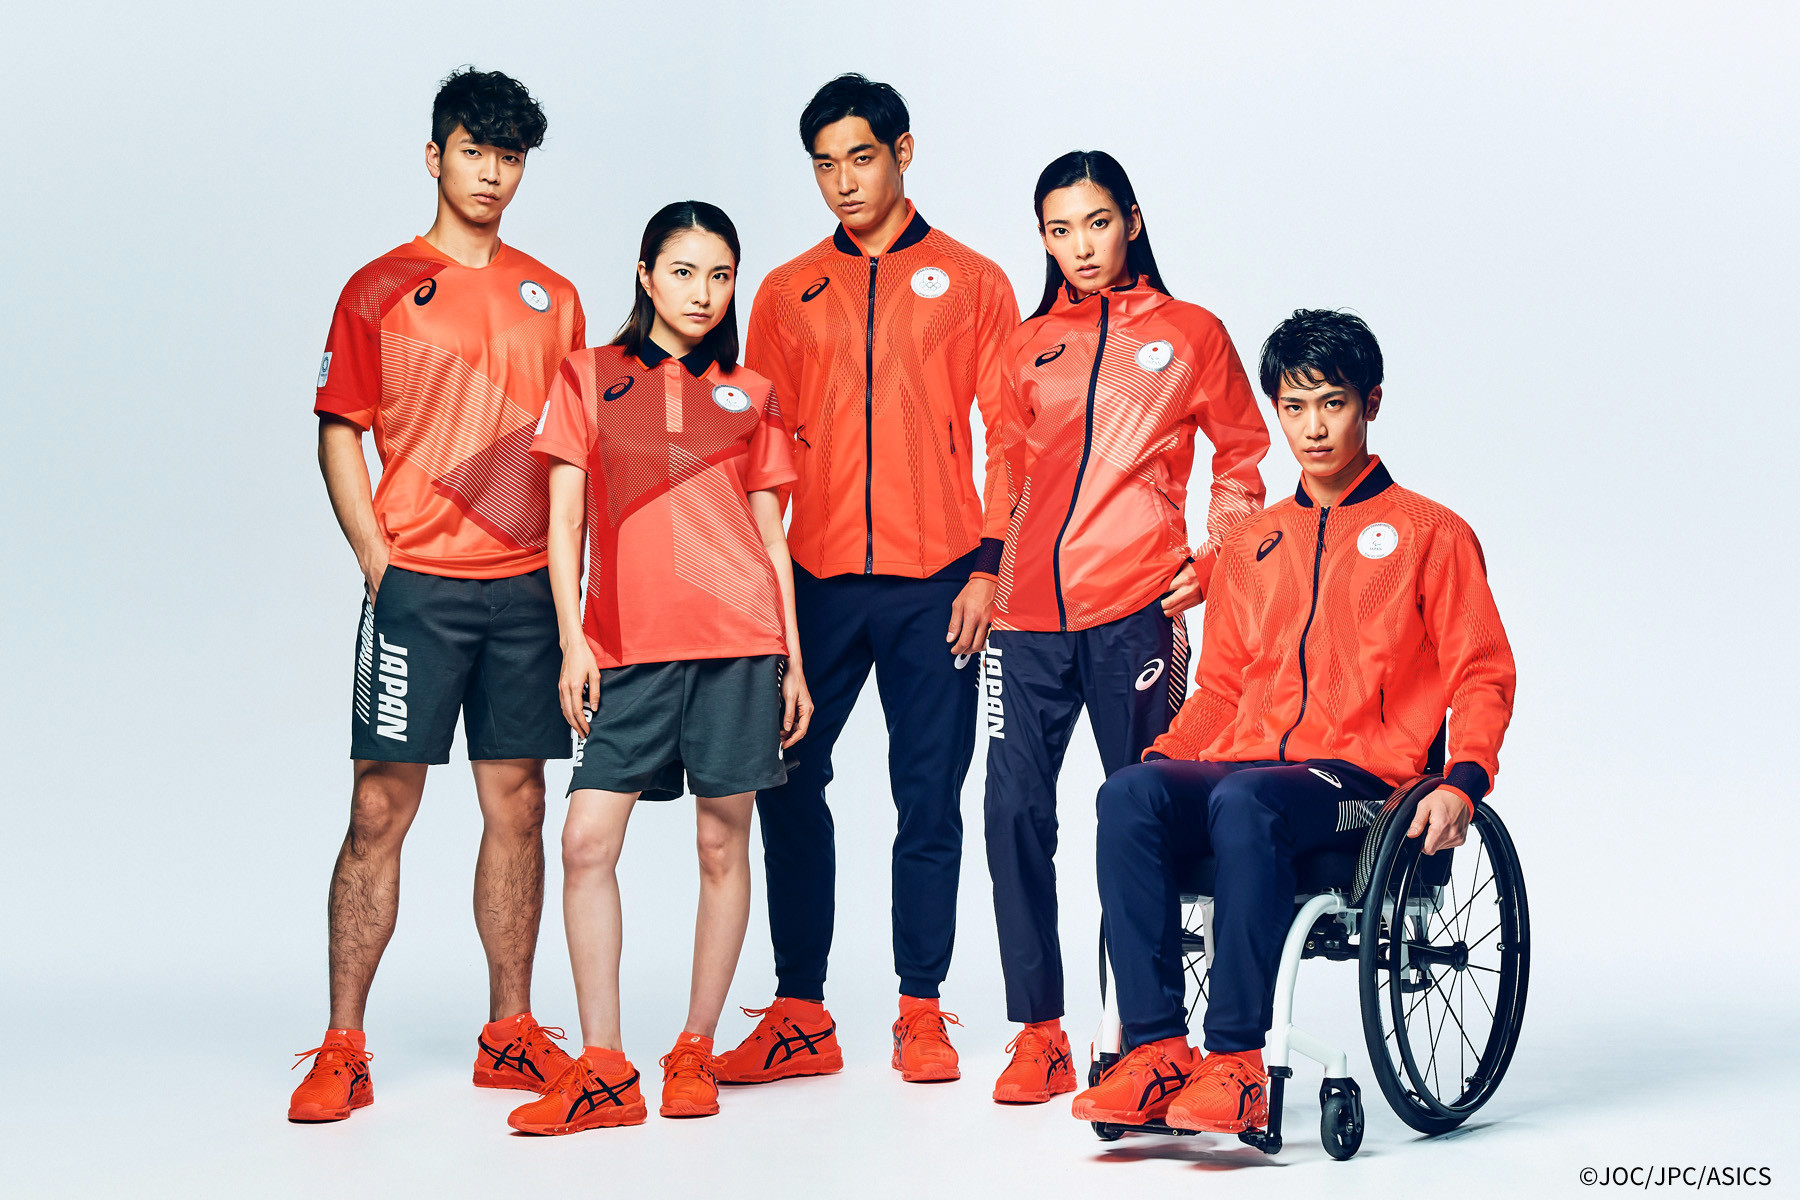 Japan's casual wear for Tokyo 2020 has been launched ©JOC/JPC/Asics